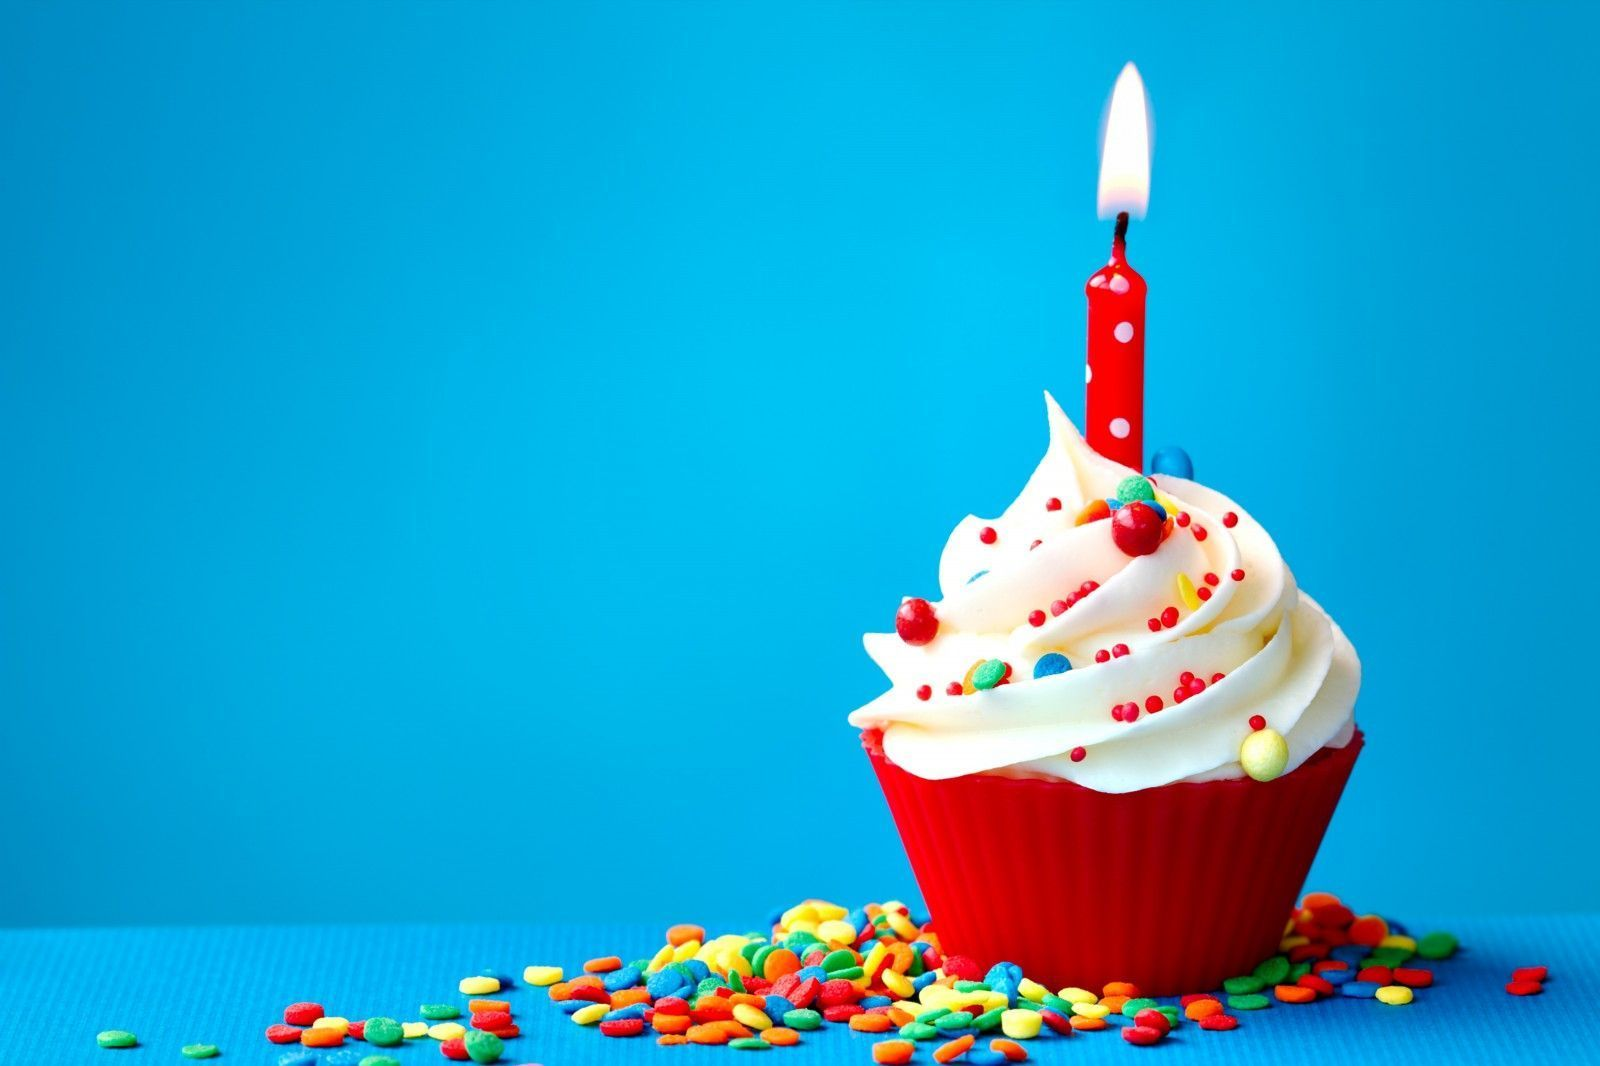 Birthday Cupcake Wallpapers - Top Free Birthday Cupcake Backgrounds -  WallpaperAccess